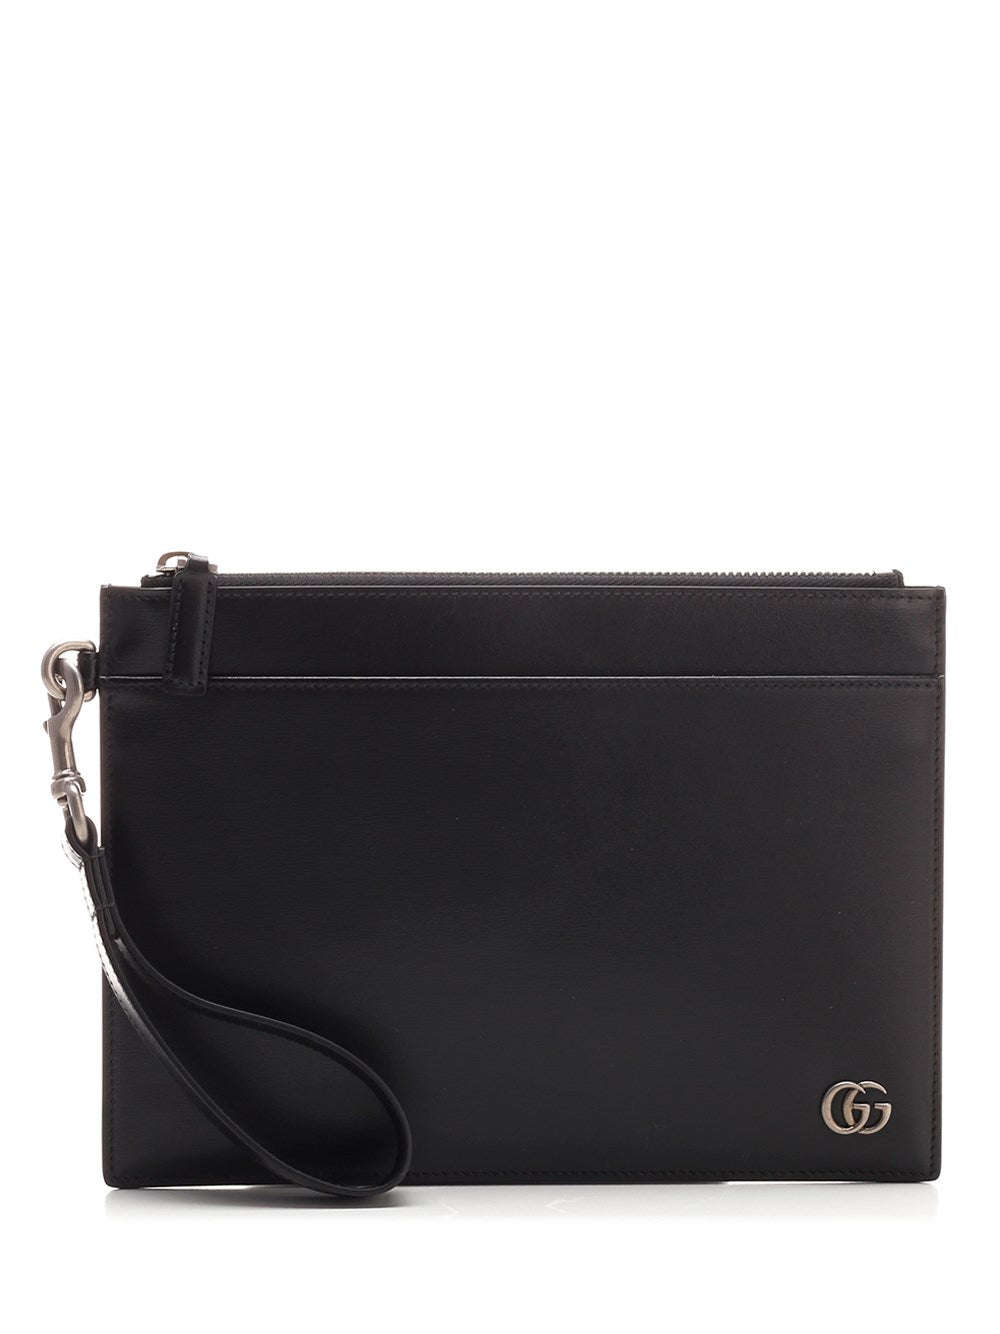 Gucci Gg Plaque Zipped Pouch In Black